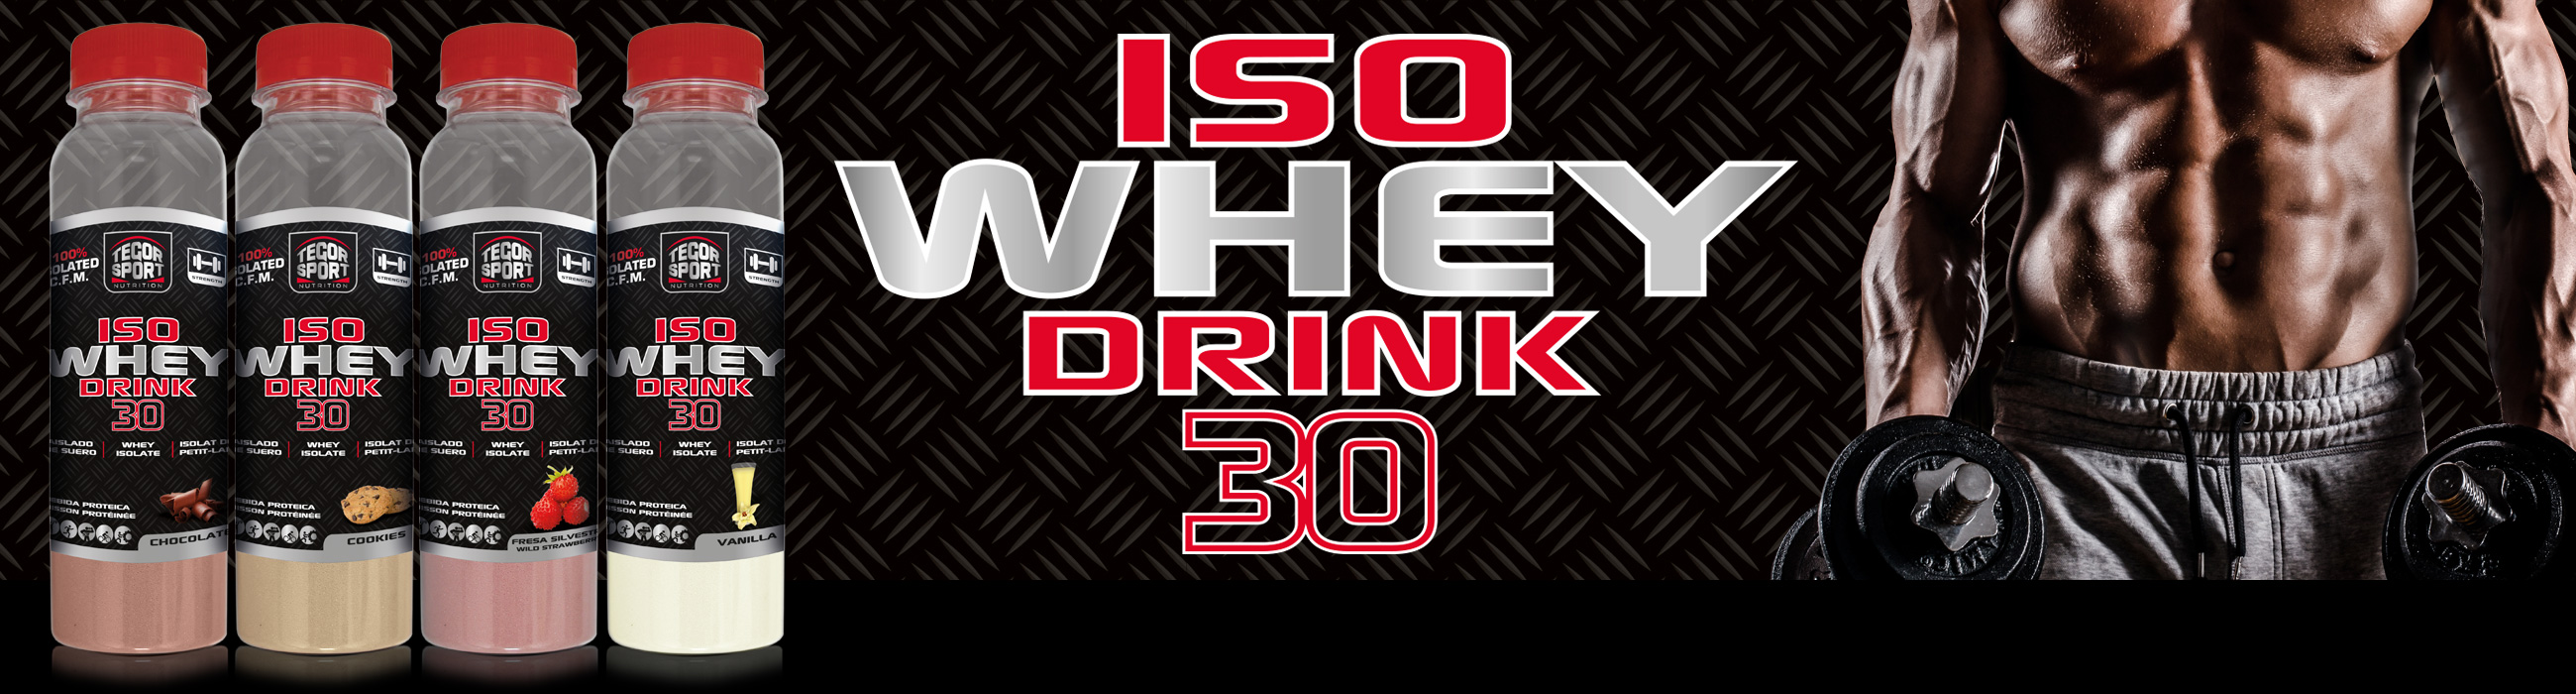 botellas Iso Whey Drink con deportista